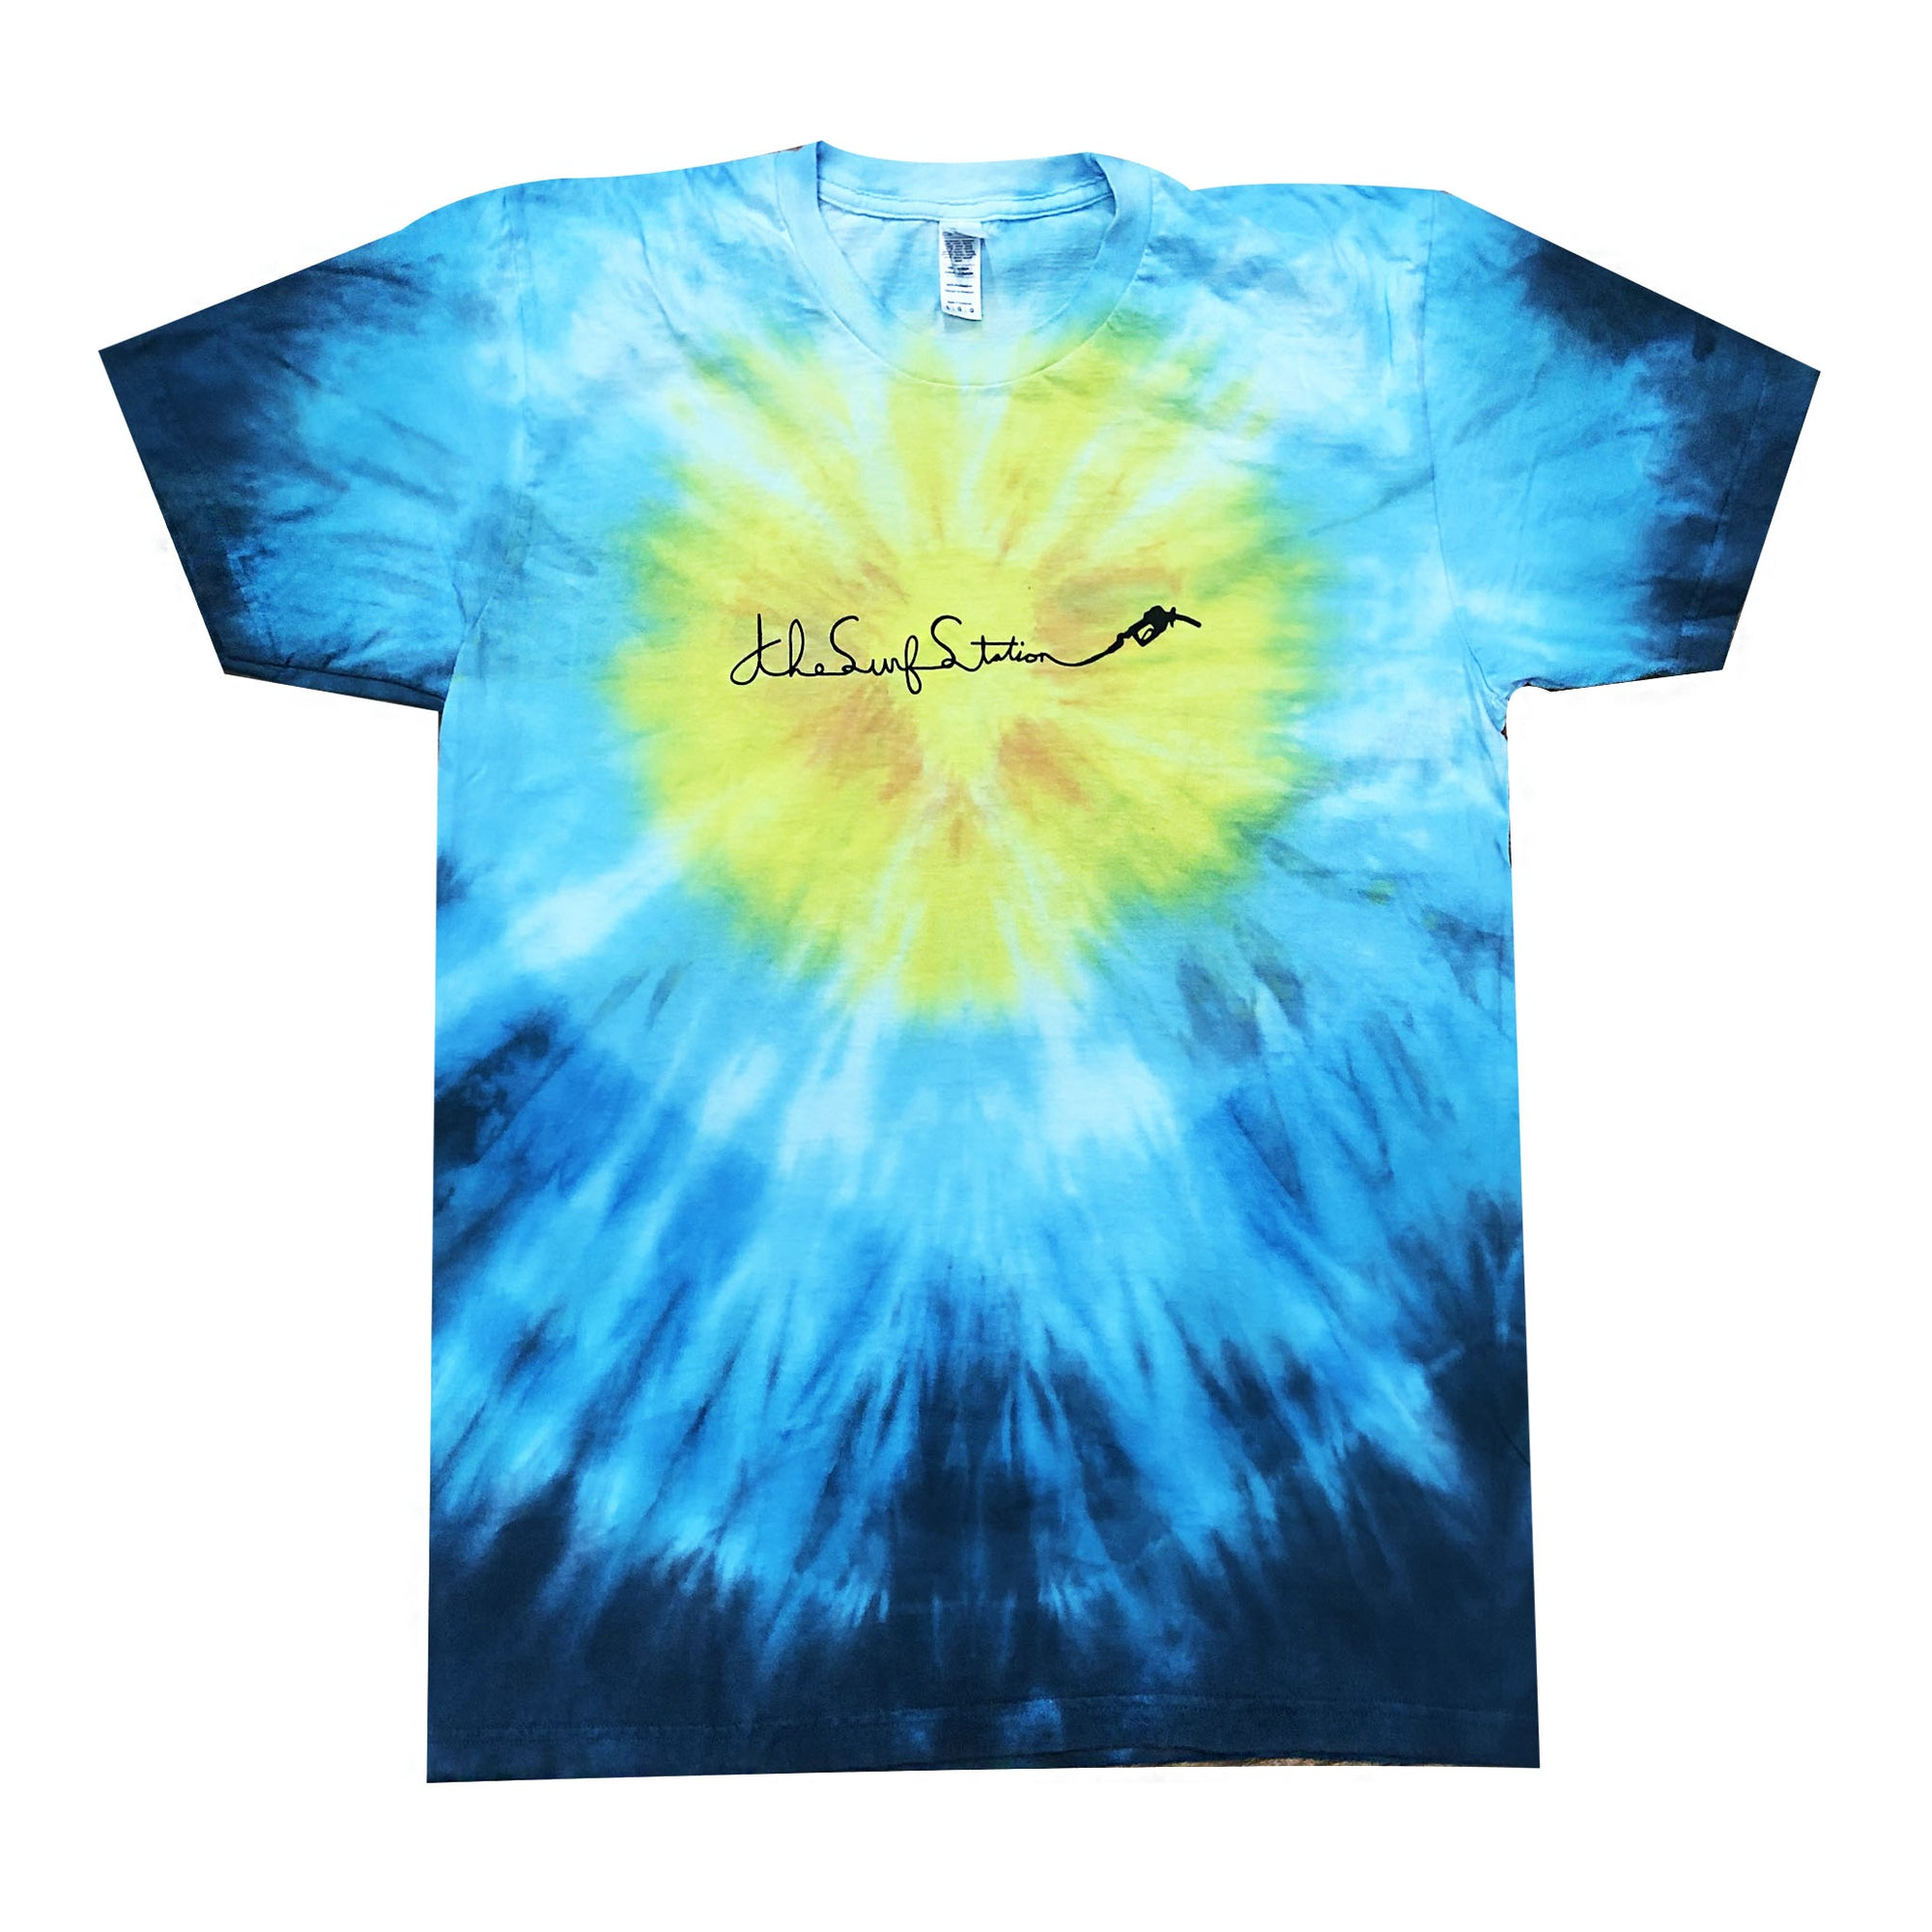 Surf Station Paisley Tie Dye S/S T-Shirt